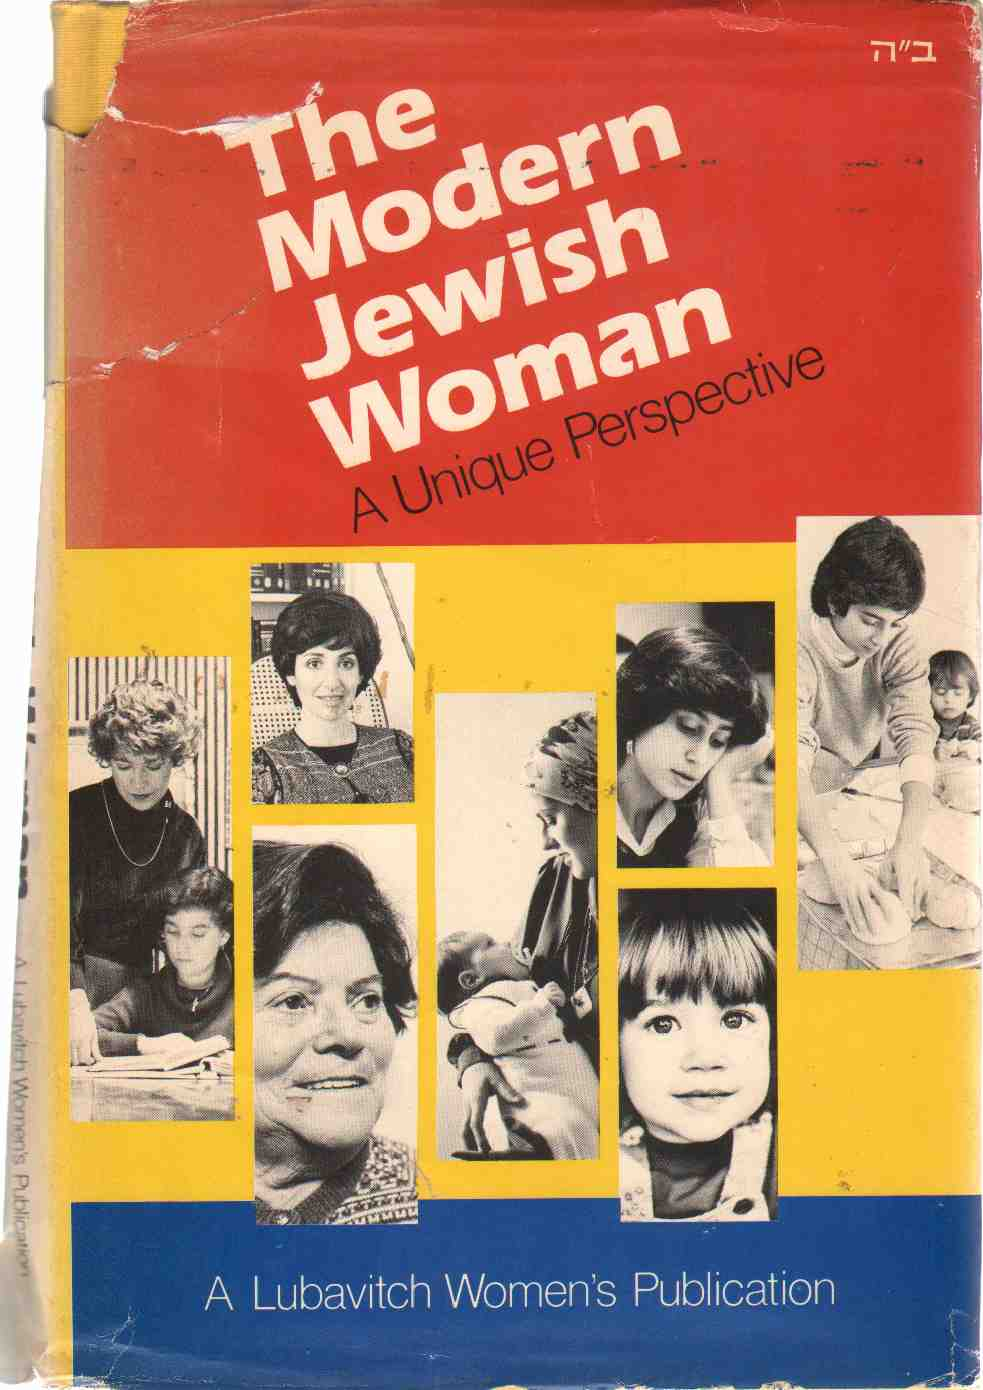 THE MODERN JEWISH WOMAN A Unique Perspective, A Lubavitch Womens Publication